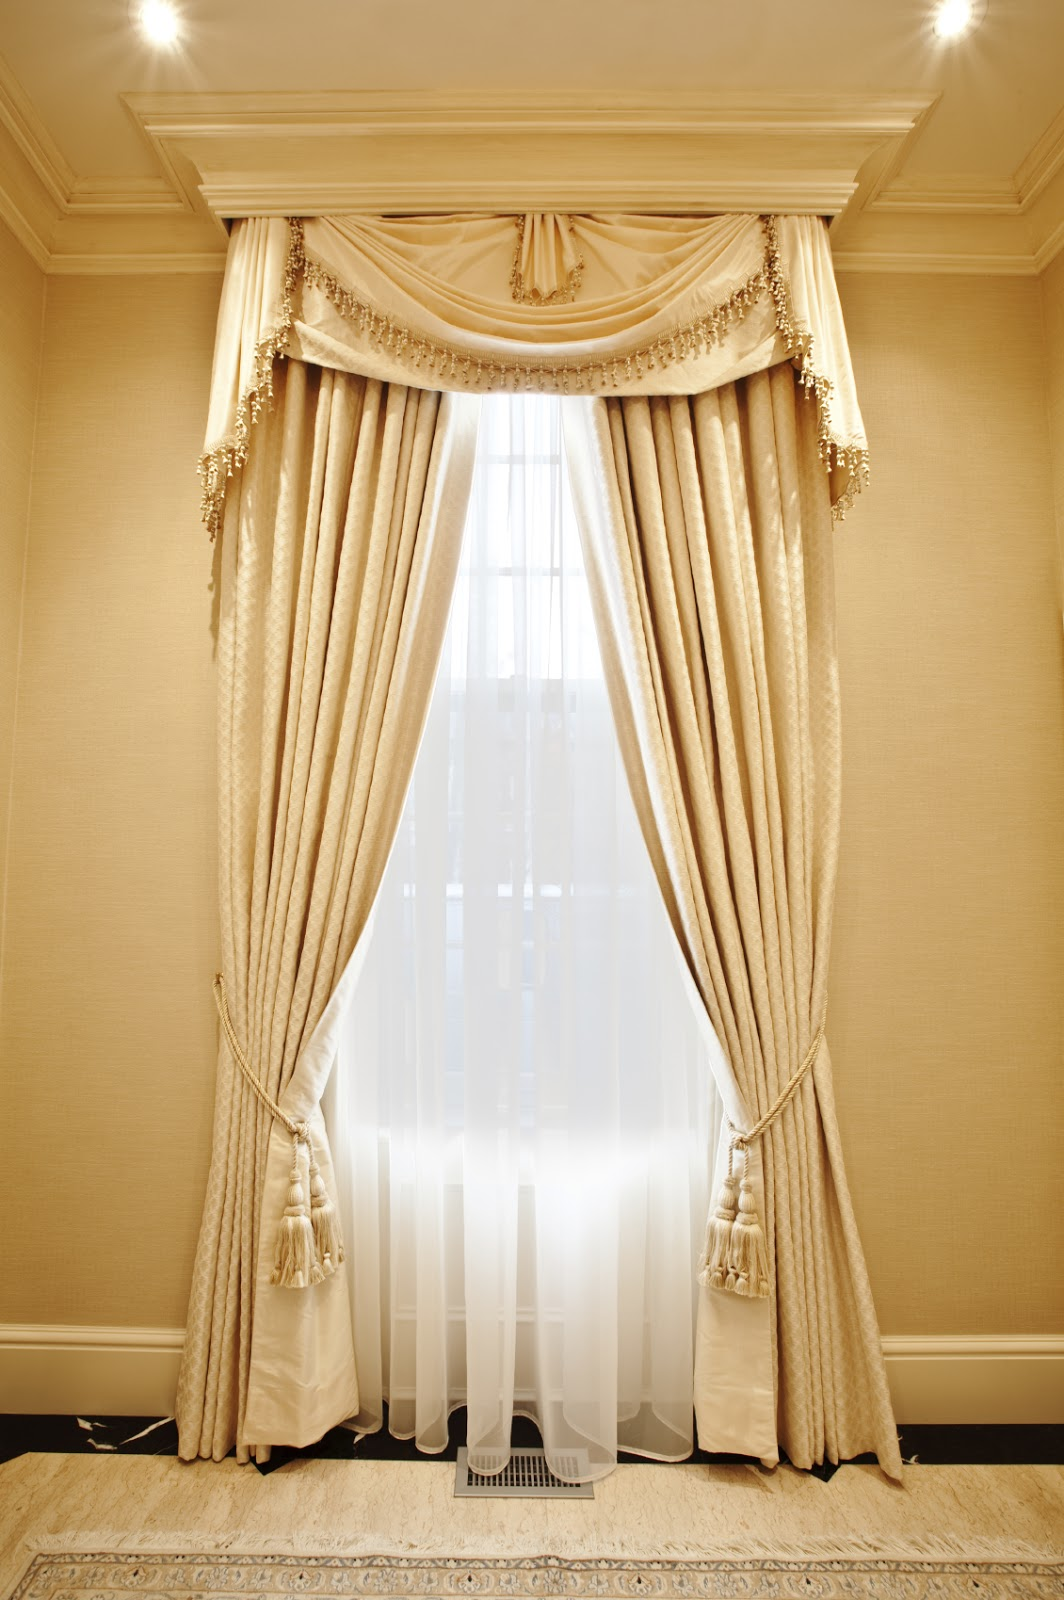 Elegant Window Curtains Elevator Smoke Curtain Elmo Elvis77 The Final